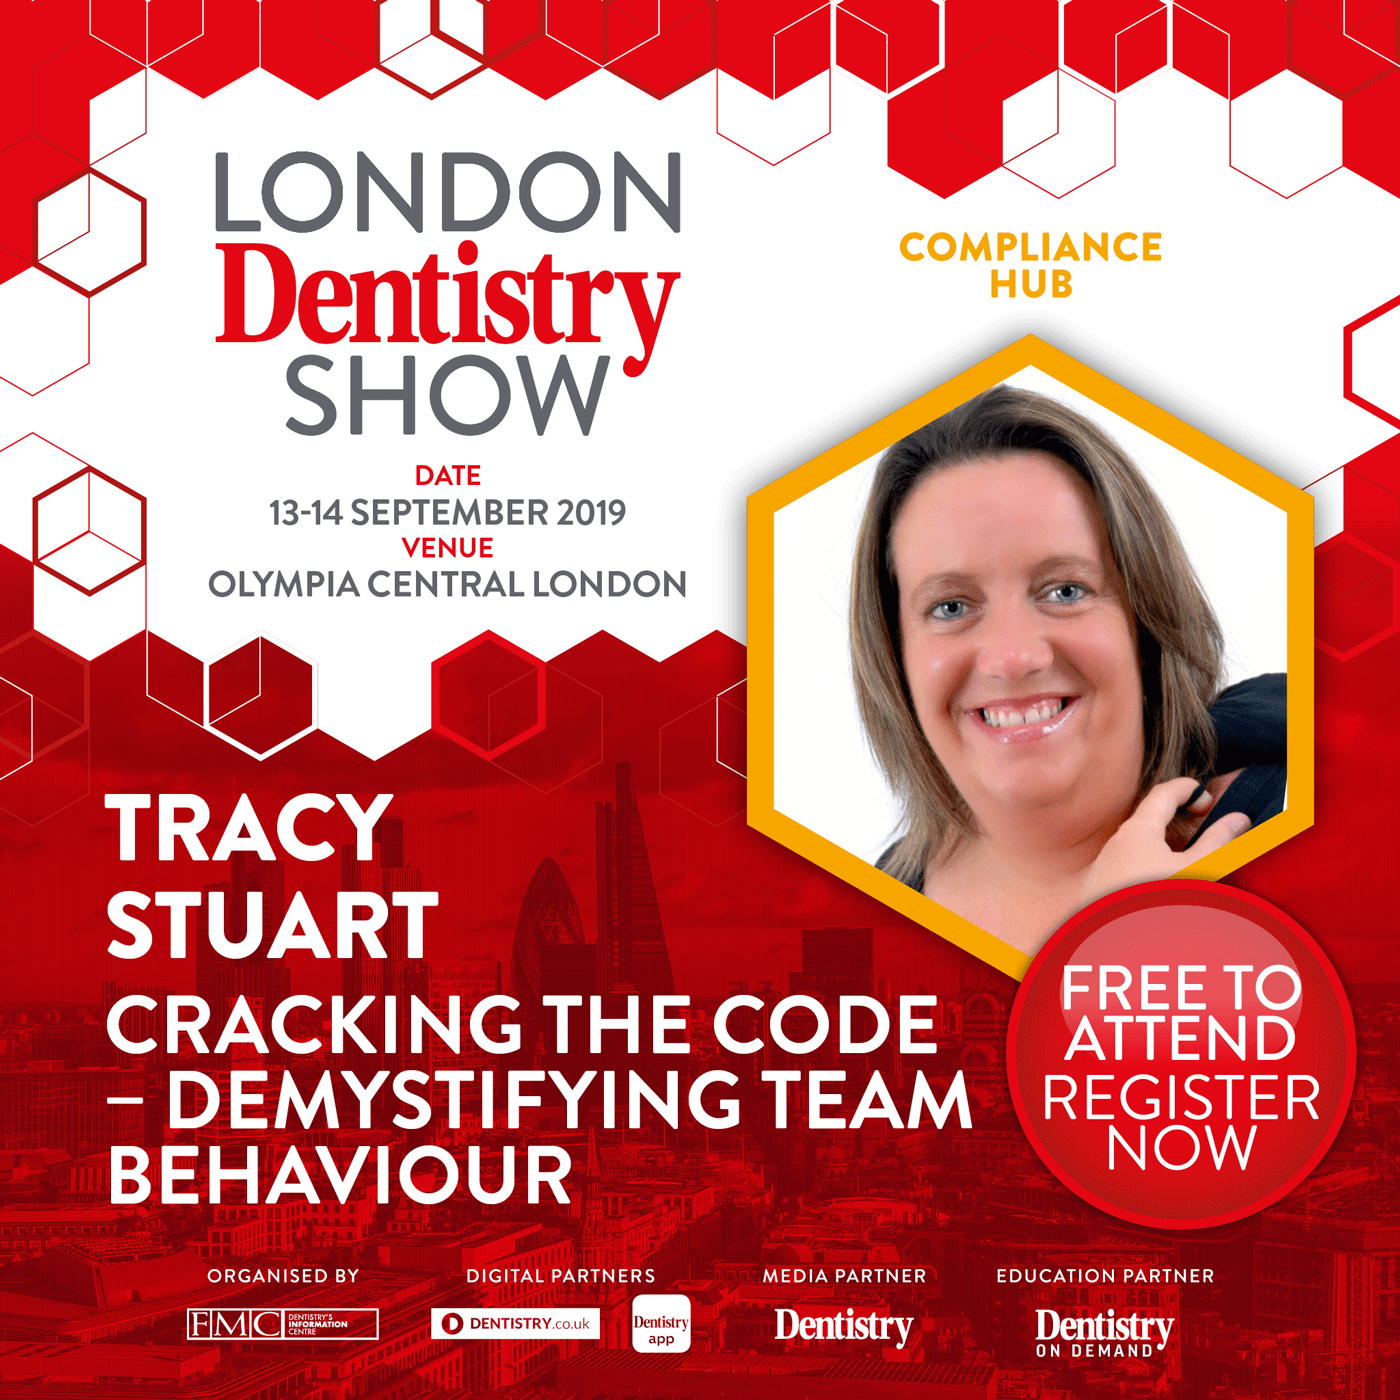 Poster advertising the London Dentistry SHow 2019